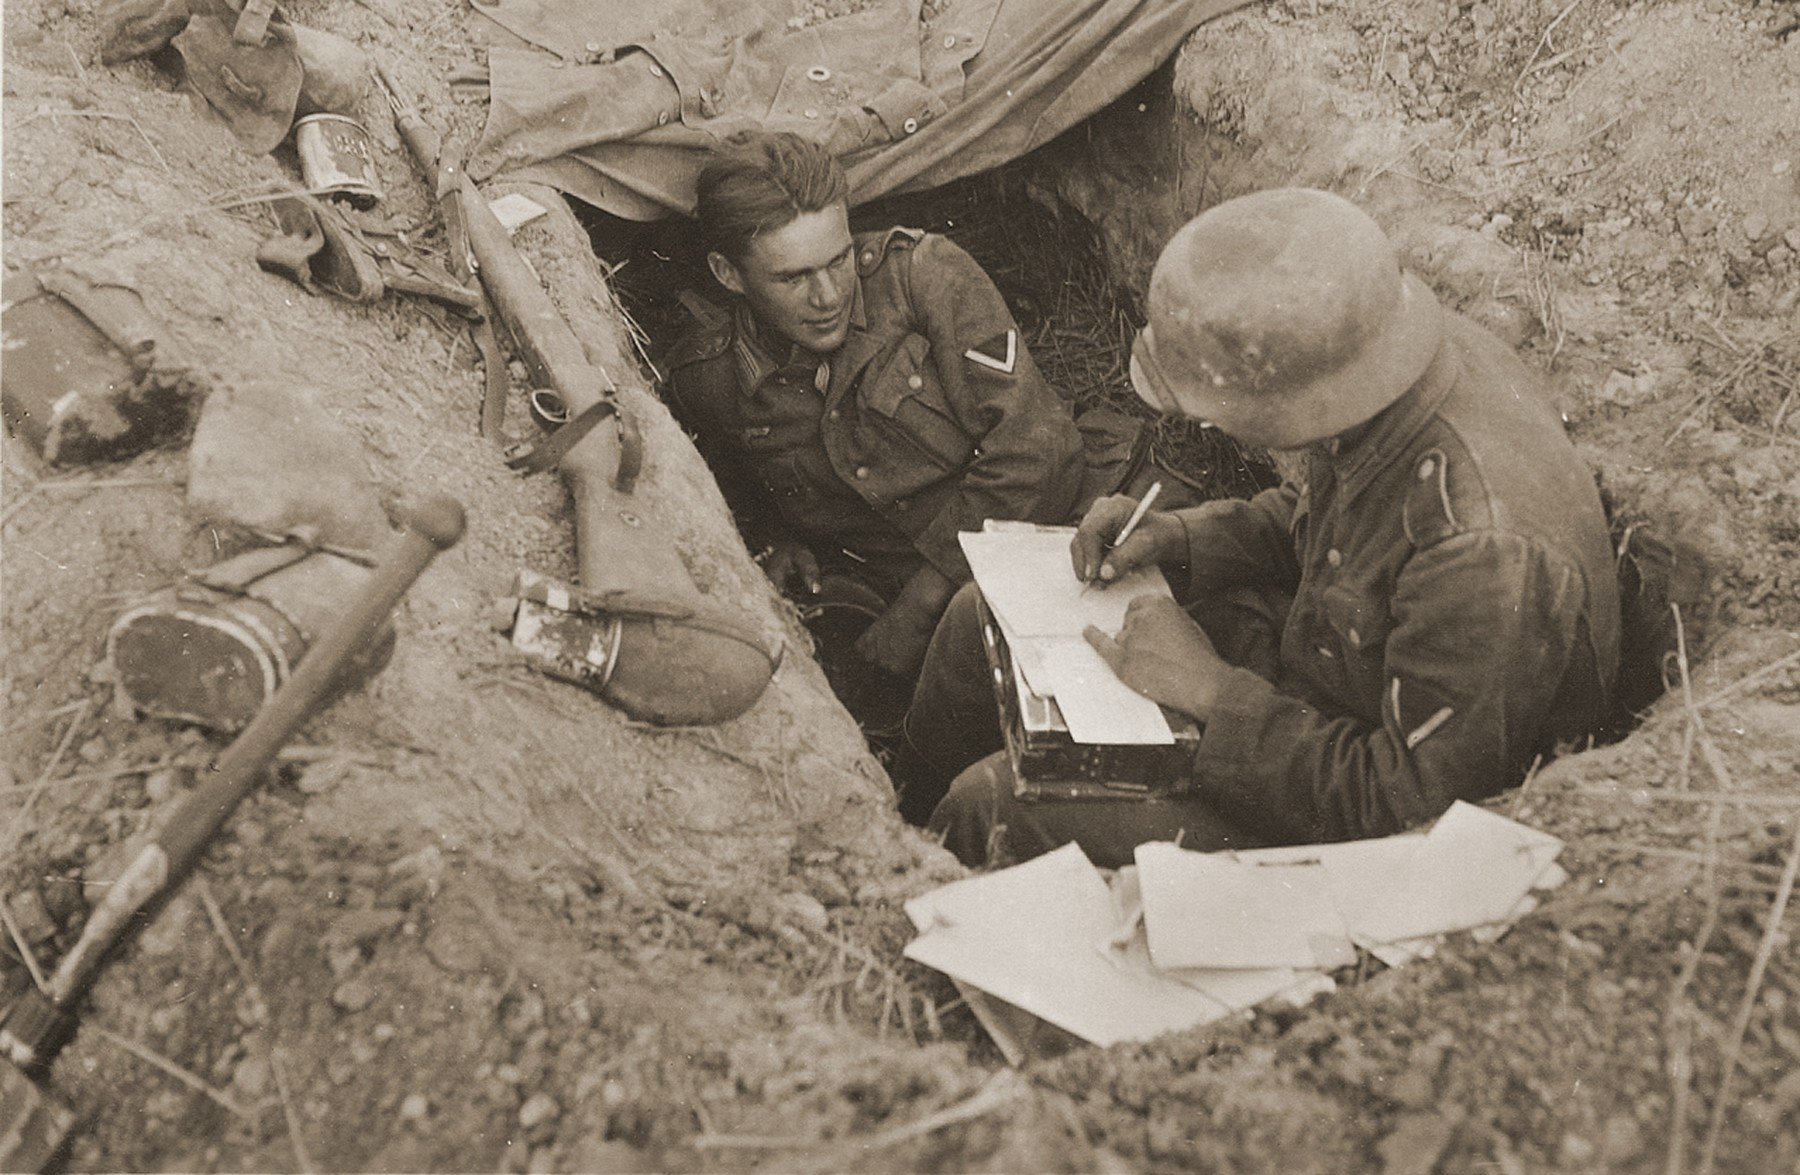 Two corporals in the German army rest in a foxhole during a lull in the fighting on the Eastern Front.  The man at right is writing either a letter or a report.